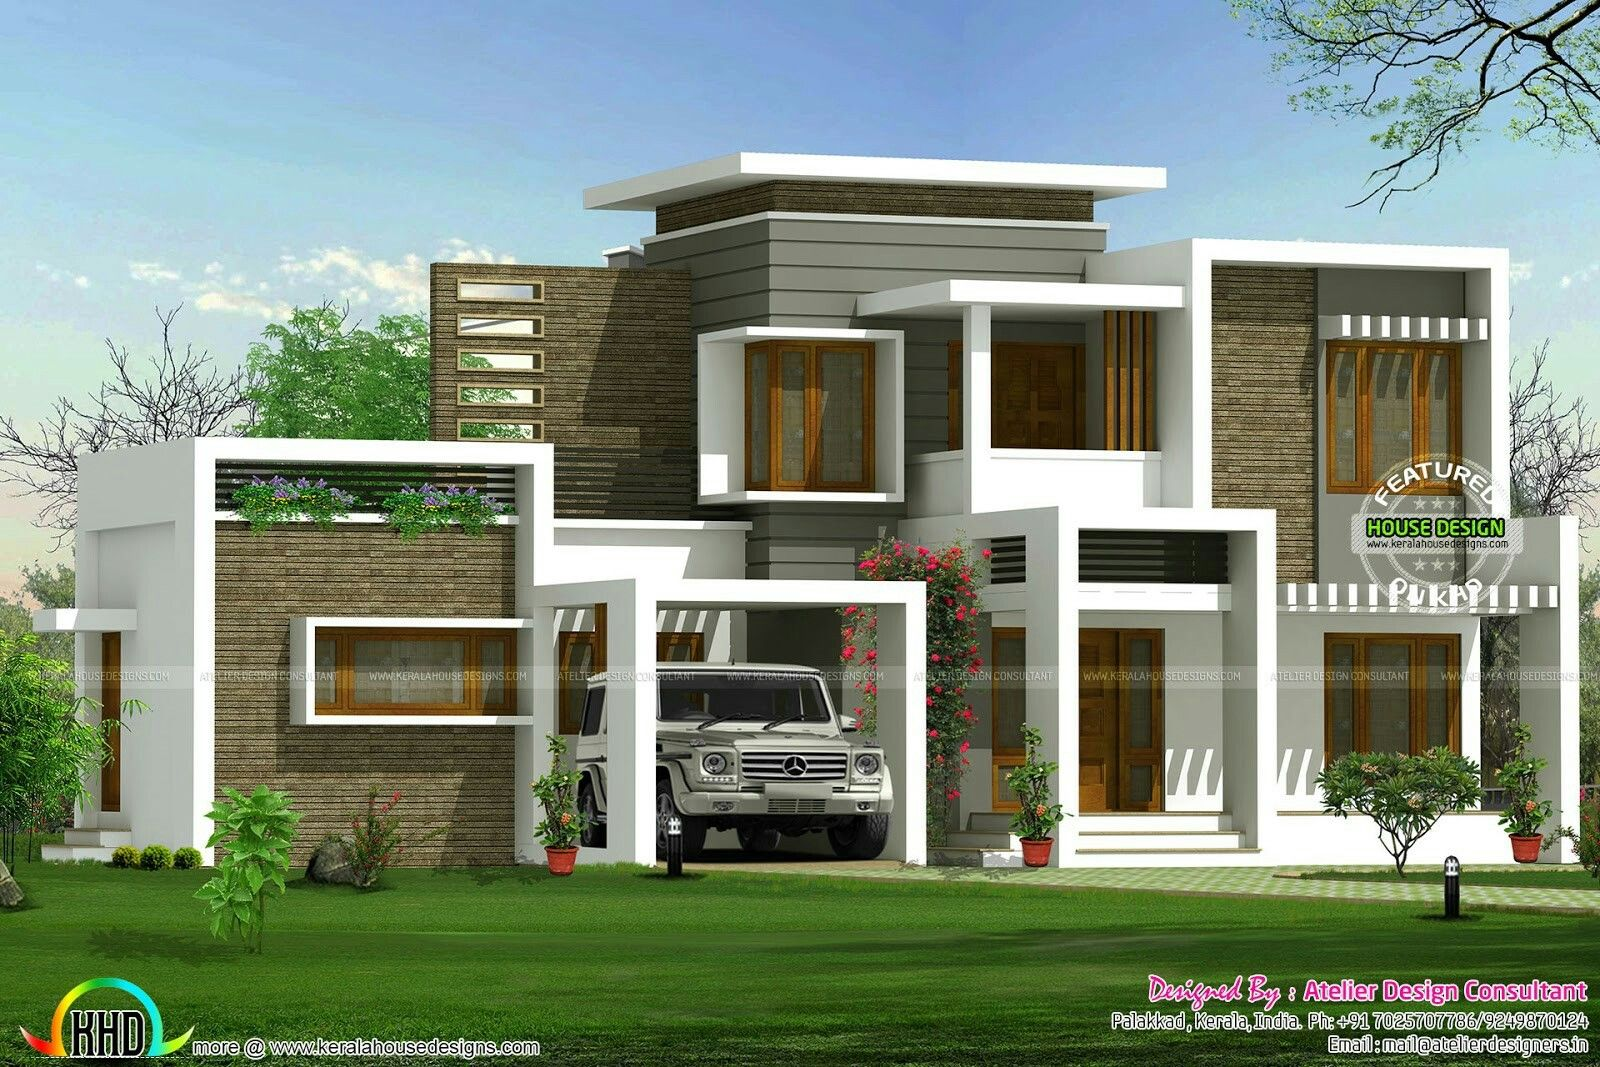 House design contemporary - Home Design Images House Floor Plans And Designs Bighousefloorplanhousedesigns Home Designs Floor Plans Contemporary Home Design